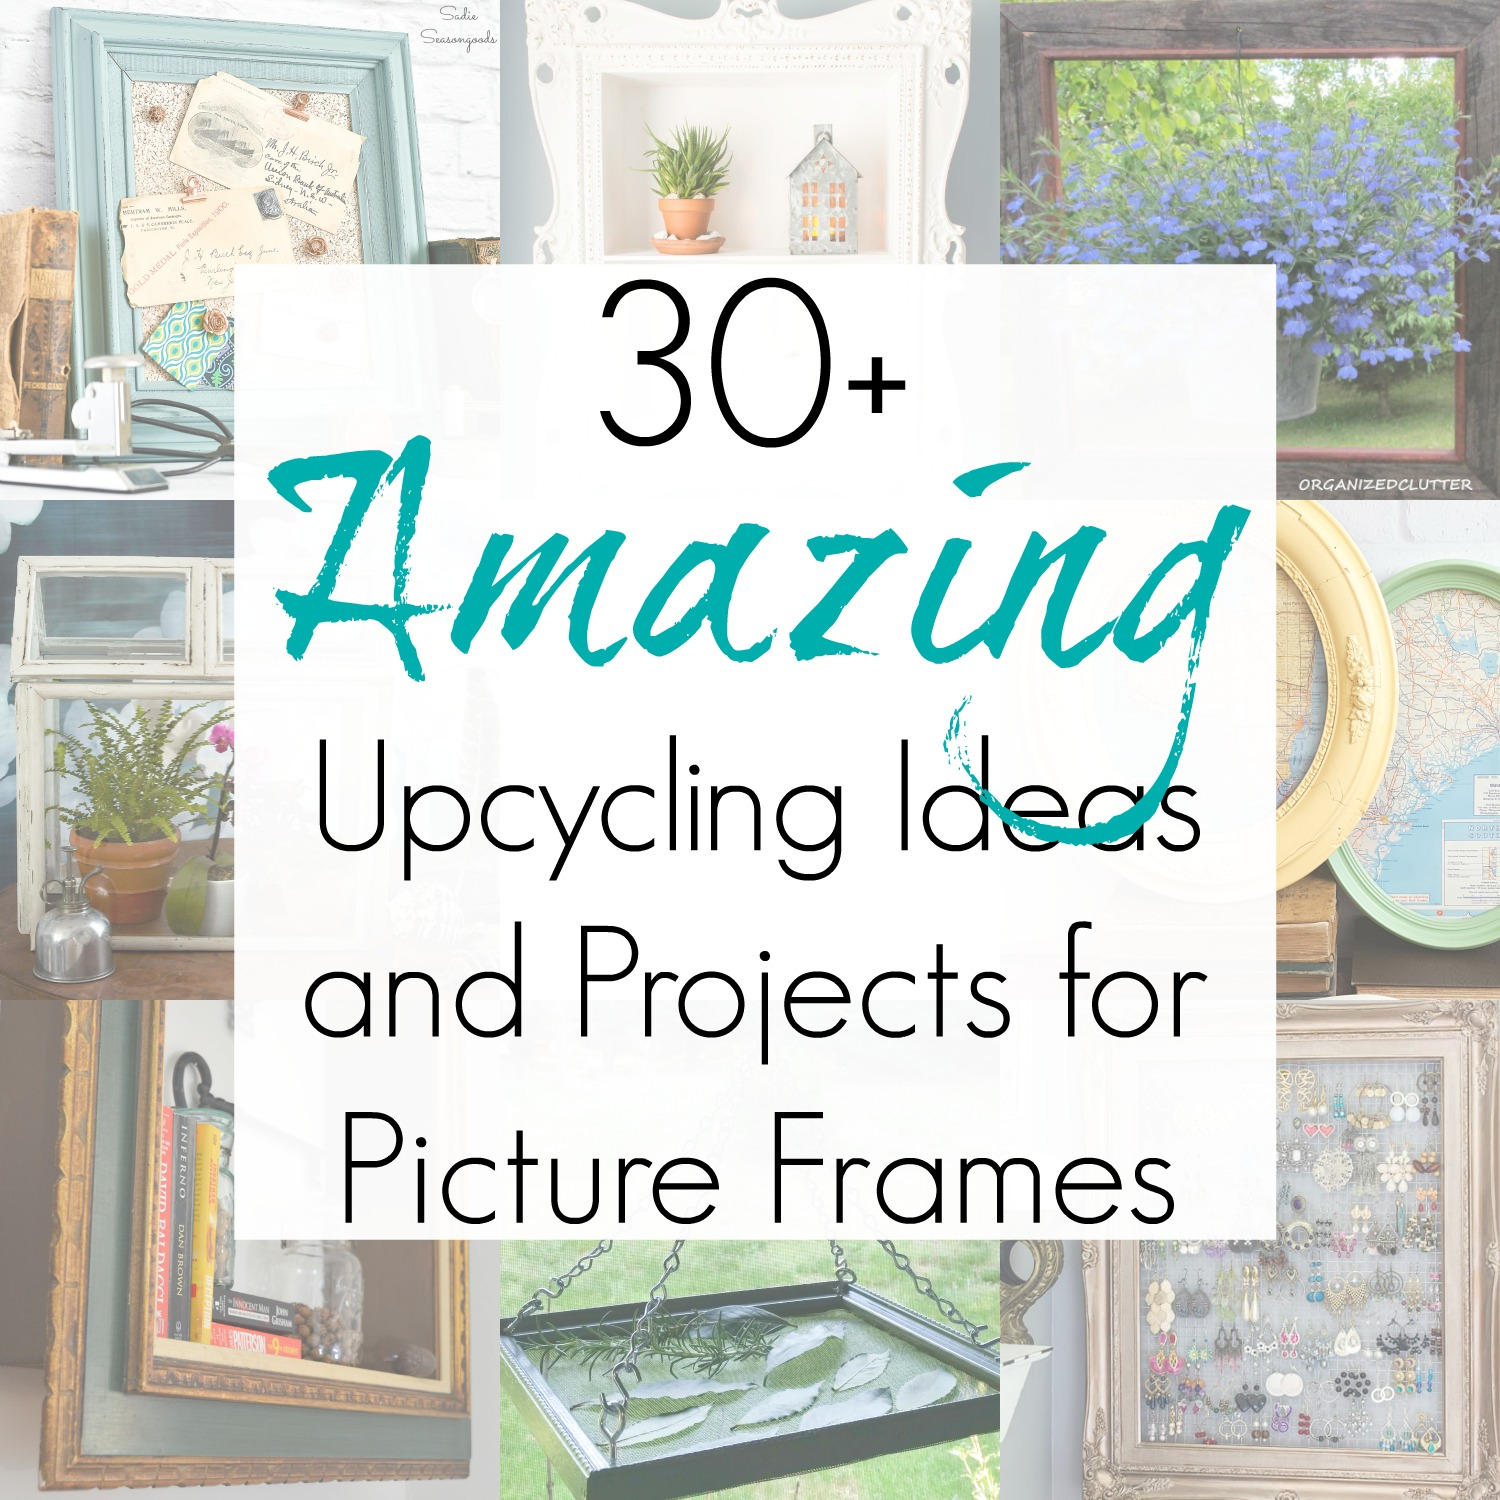 30+ Ideas for Upcycled Picture Frames from the Thrift Store